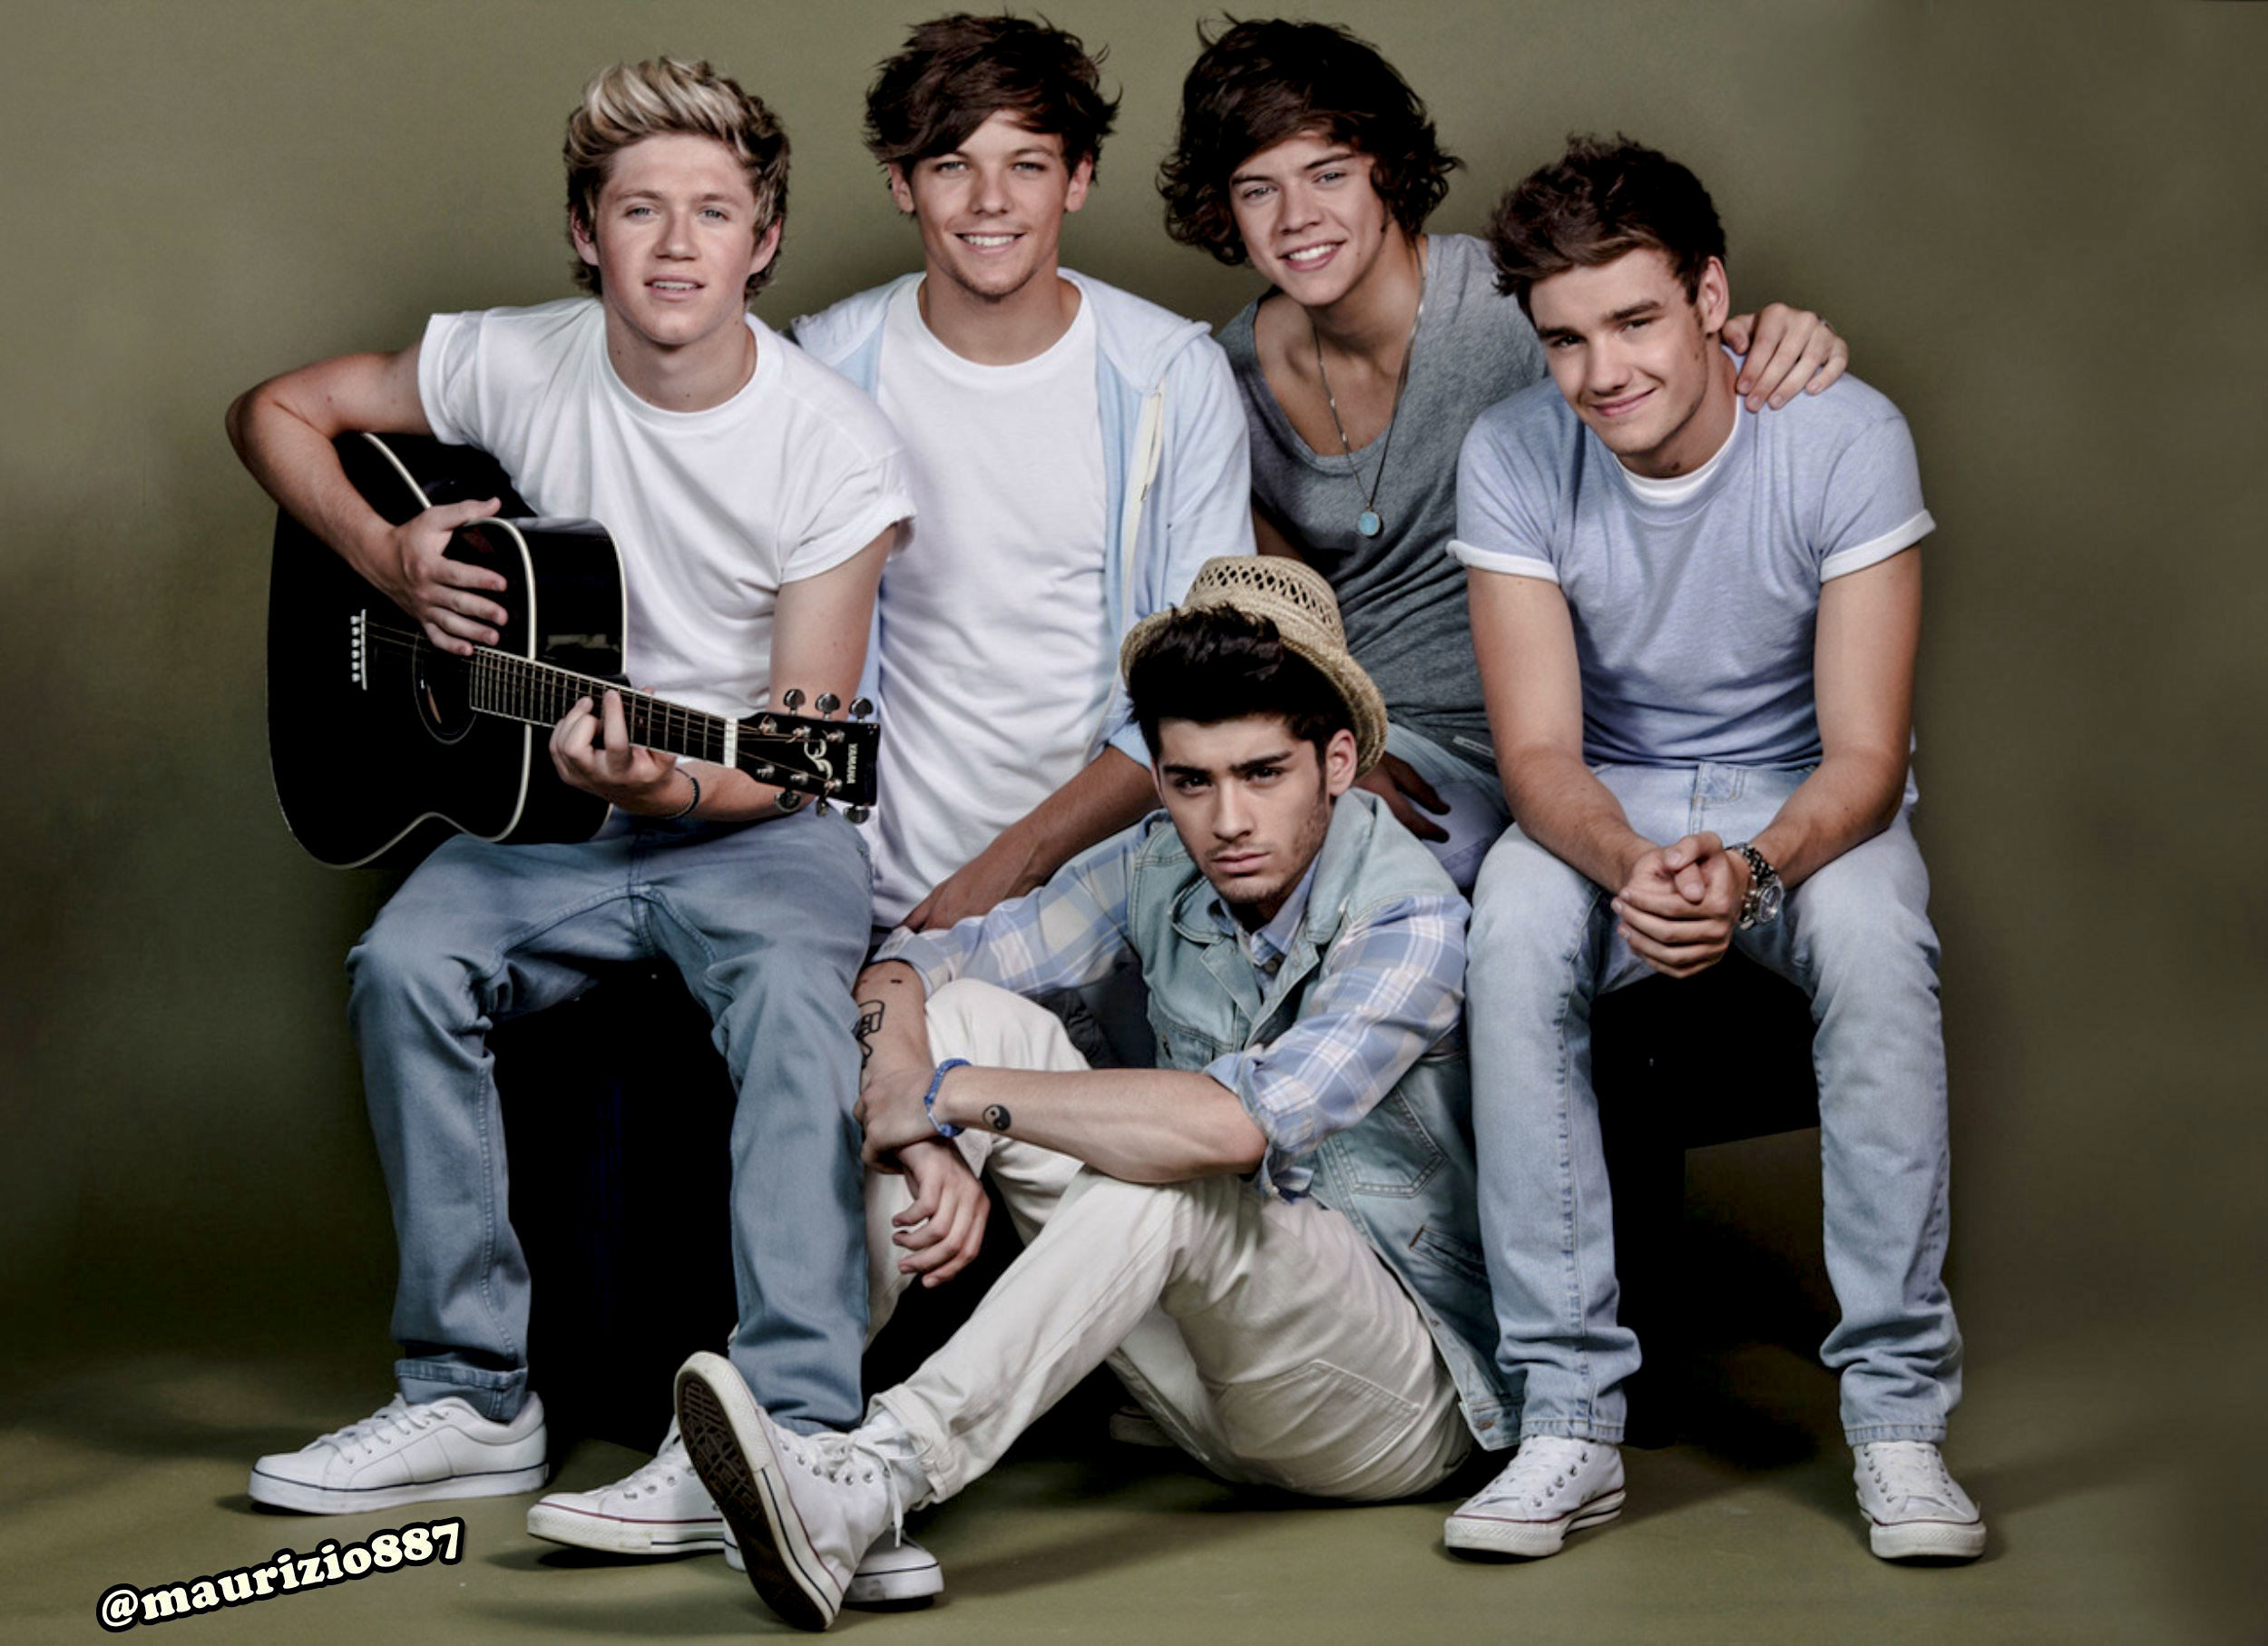 One Direction photoshoot.HD Wallpaper and background photos of One Direction  photoshoot. for fans of One Direction images.